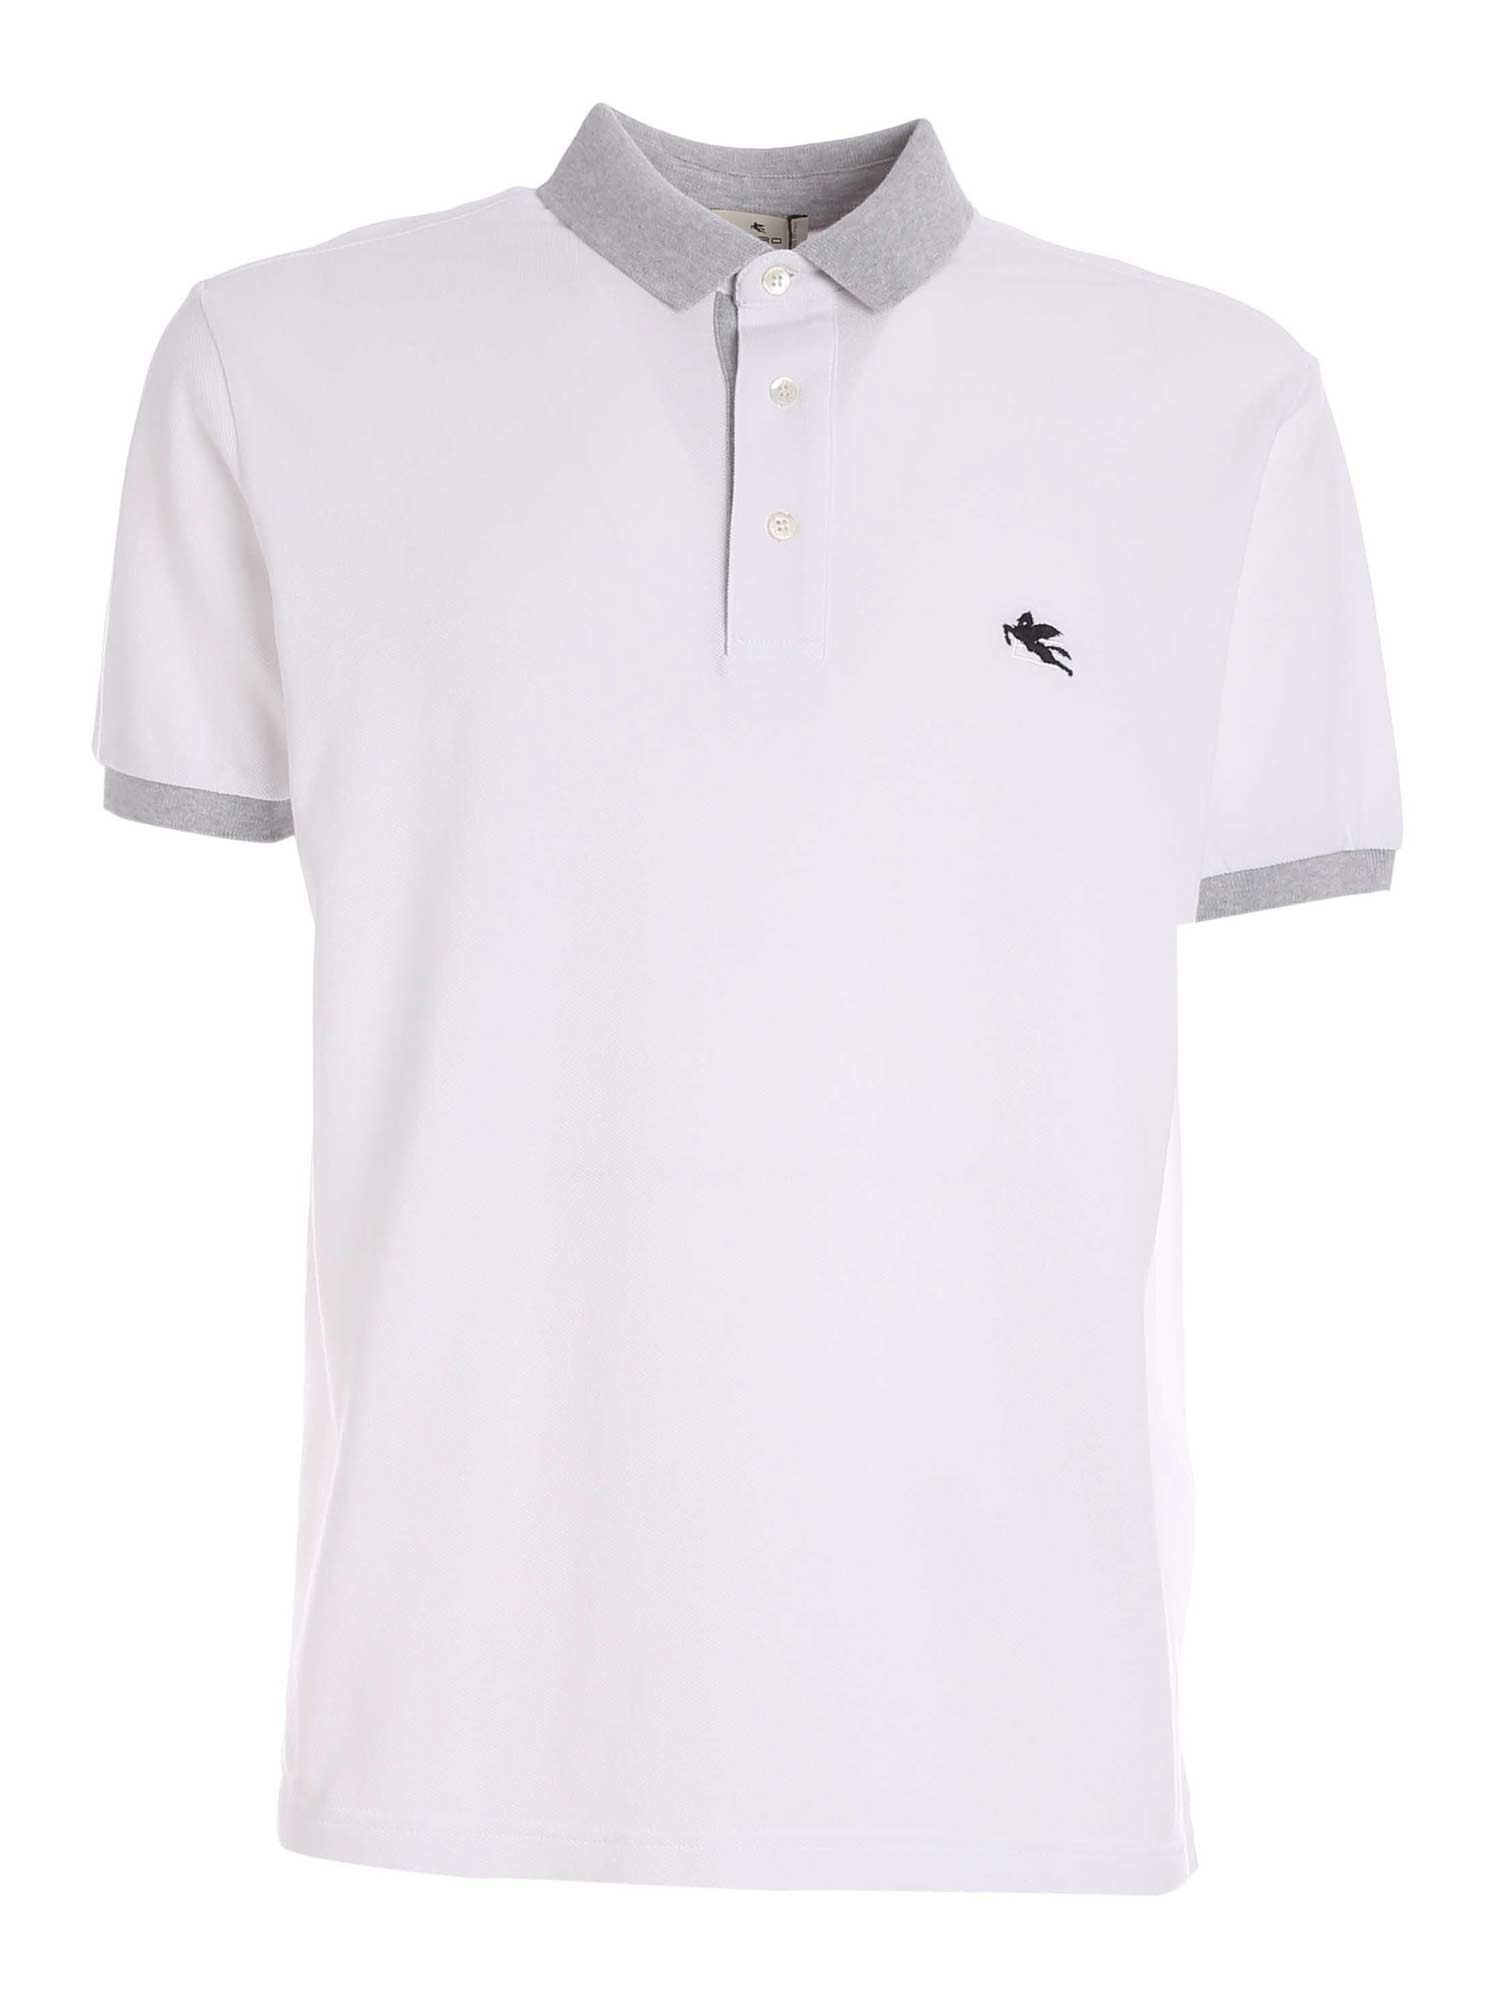 Etro Cottons CONTRASTING LOGO POLO SHIRT IN WHITE